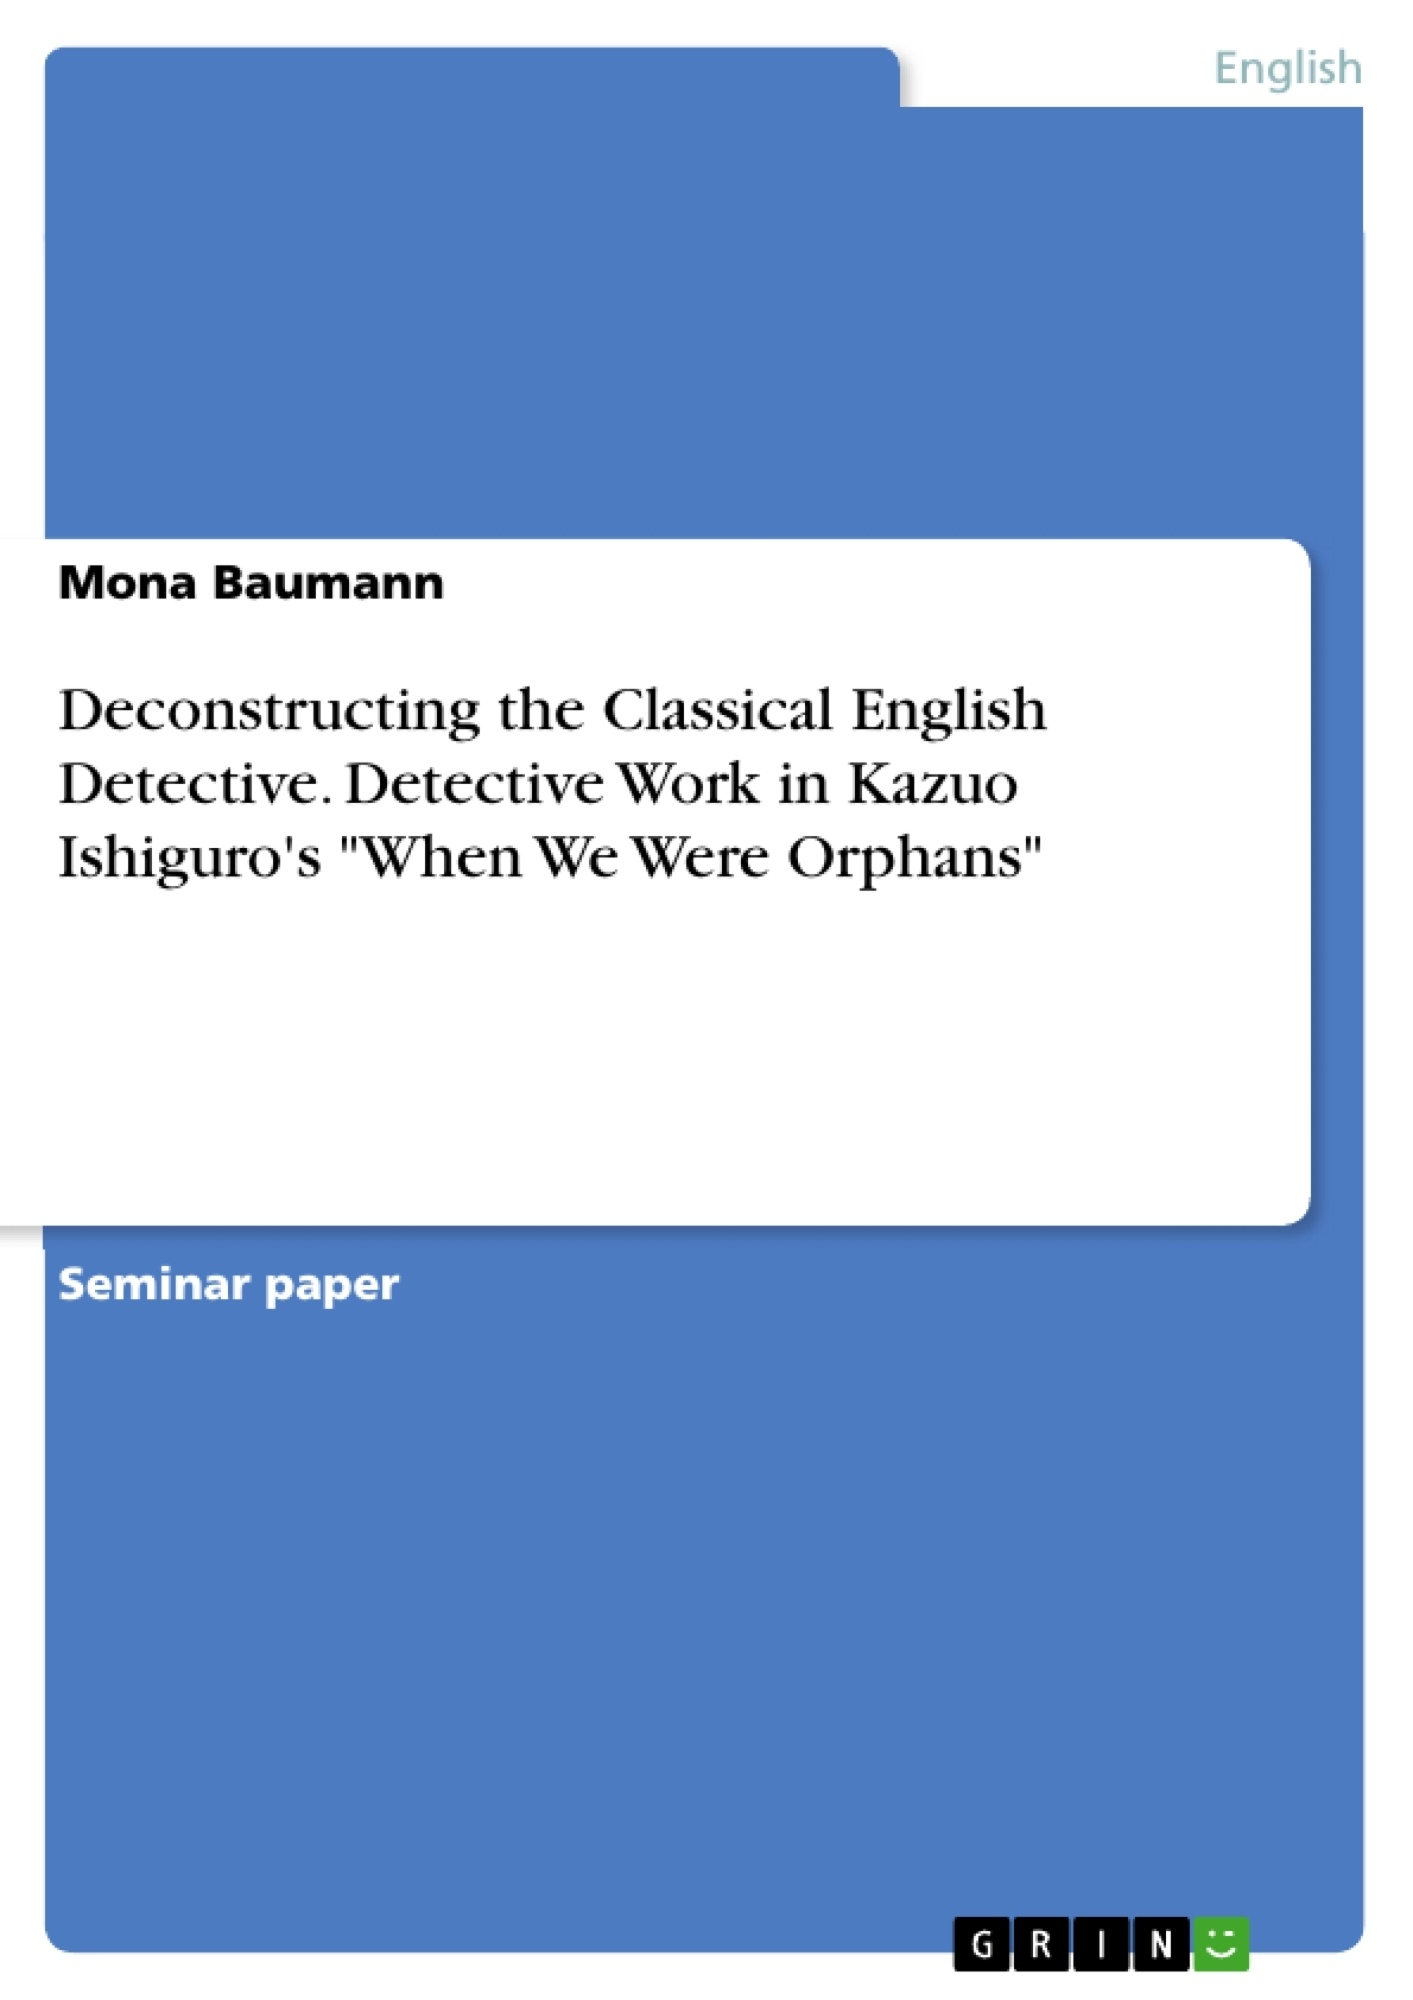 """Title: Deconstructing the Classical English Detective. Detective Work in Kazuo Ishiguro's """"When We Were Orphans"""""""